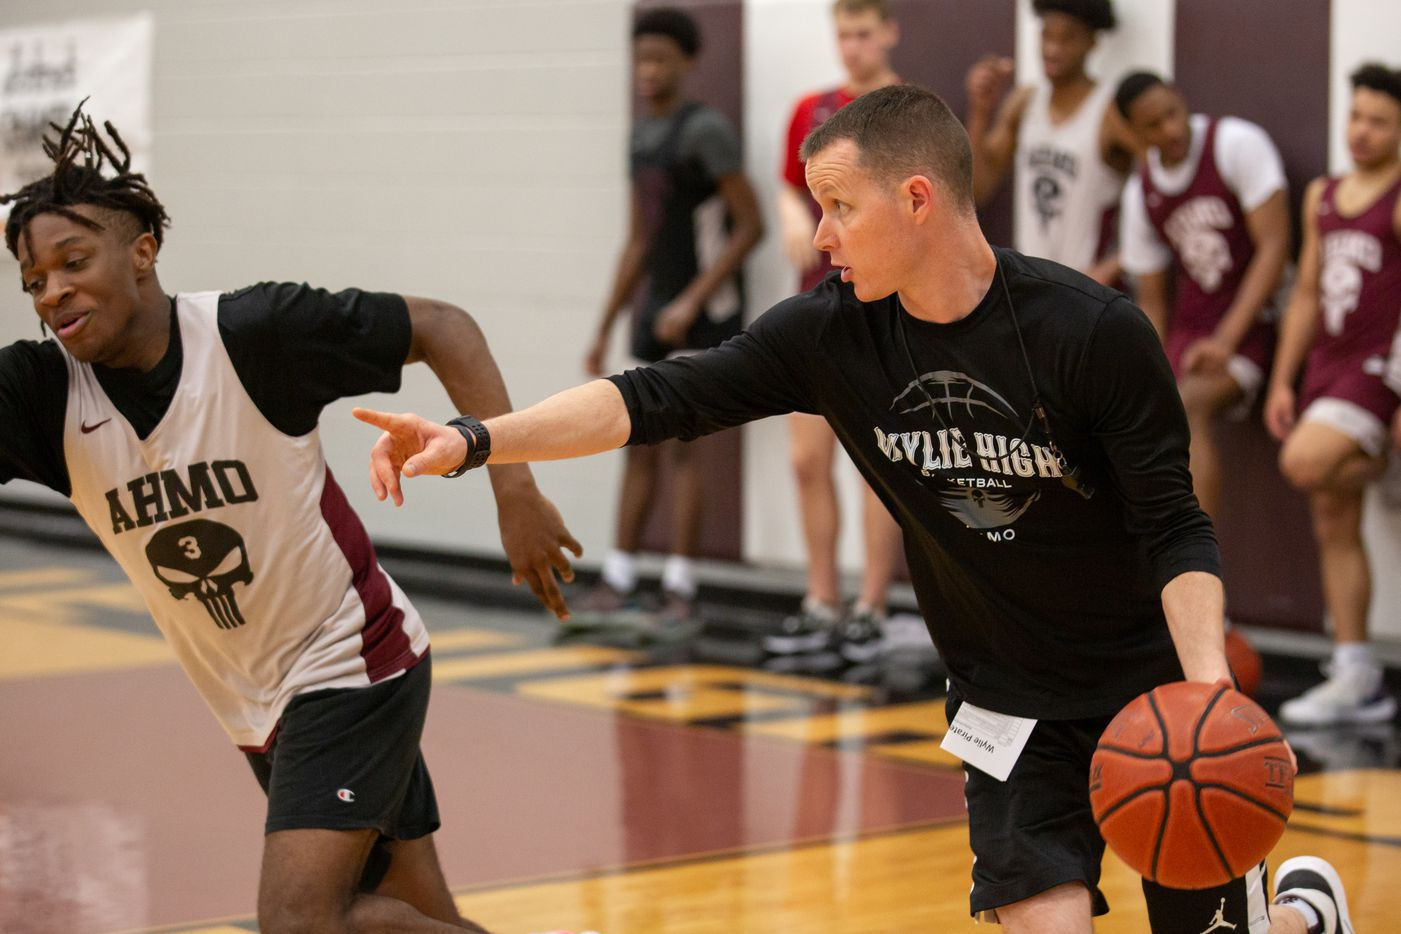 Wylie High School head basketball coach Stephen Pearce plays in a drill during practice at Wylie High School on March 11, 2020 in Wylie, Texas. (Kara Dry/Special Contributor)